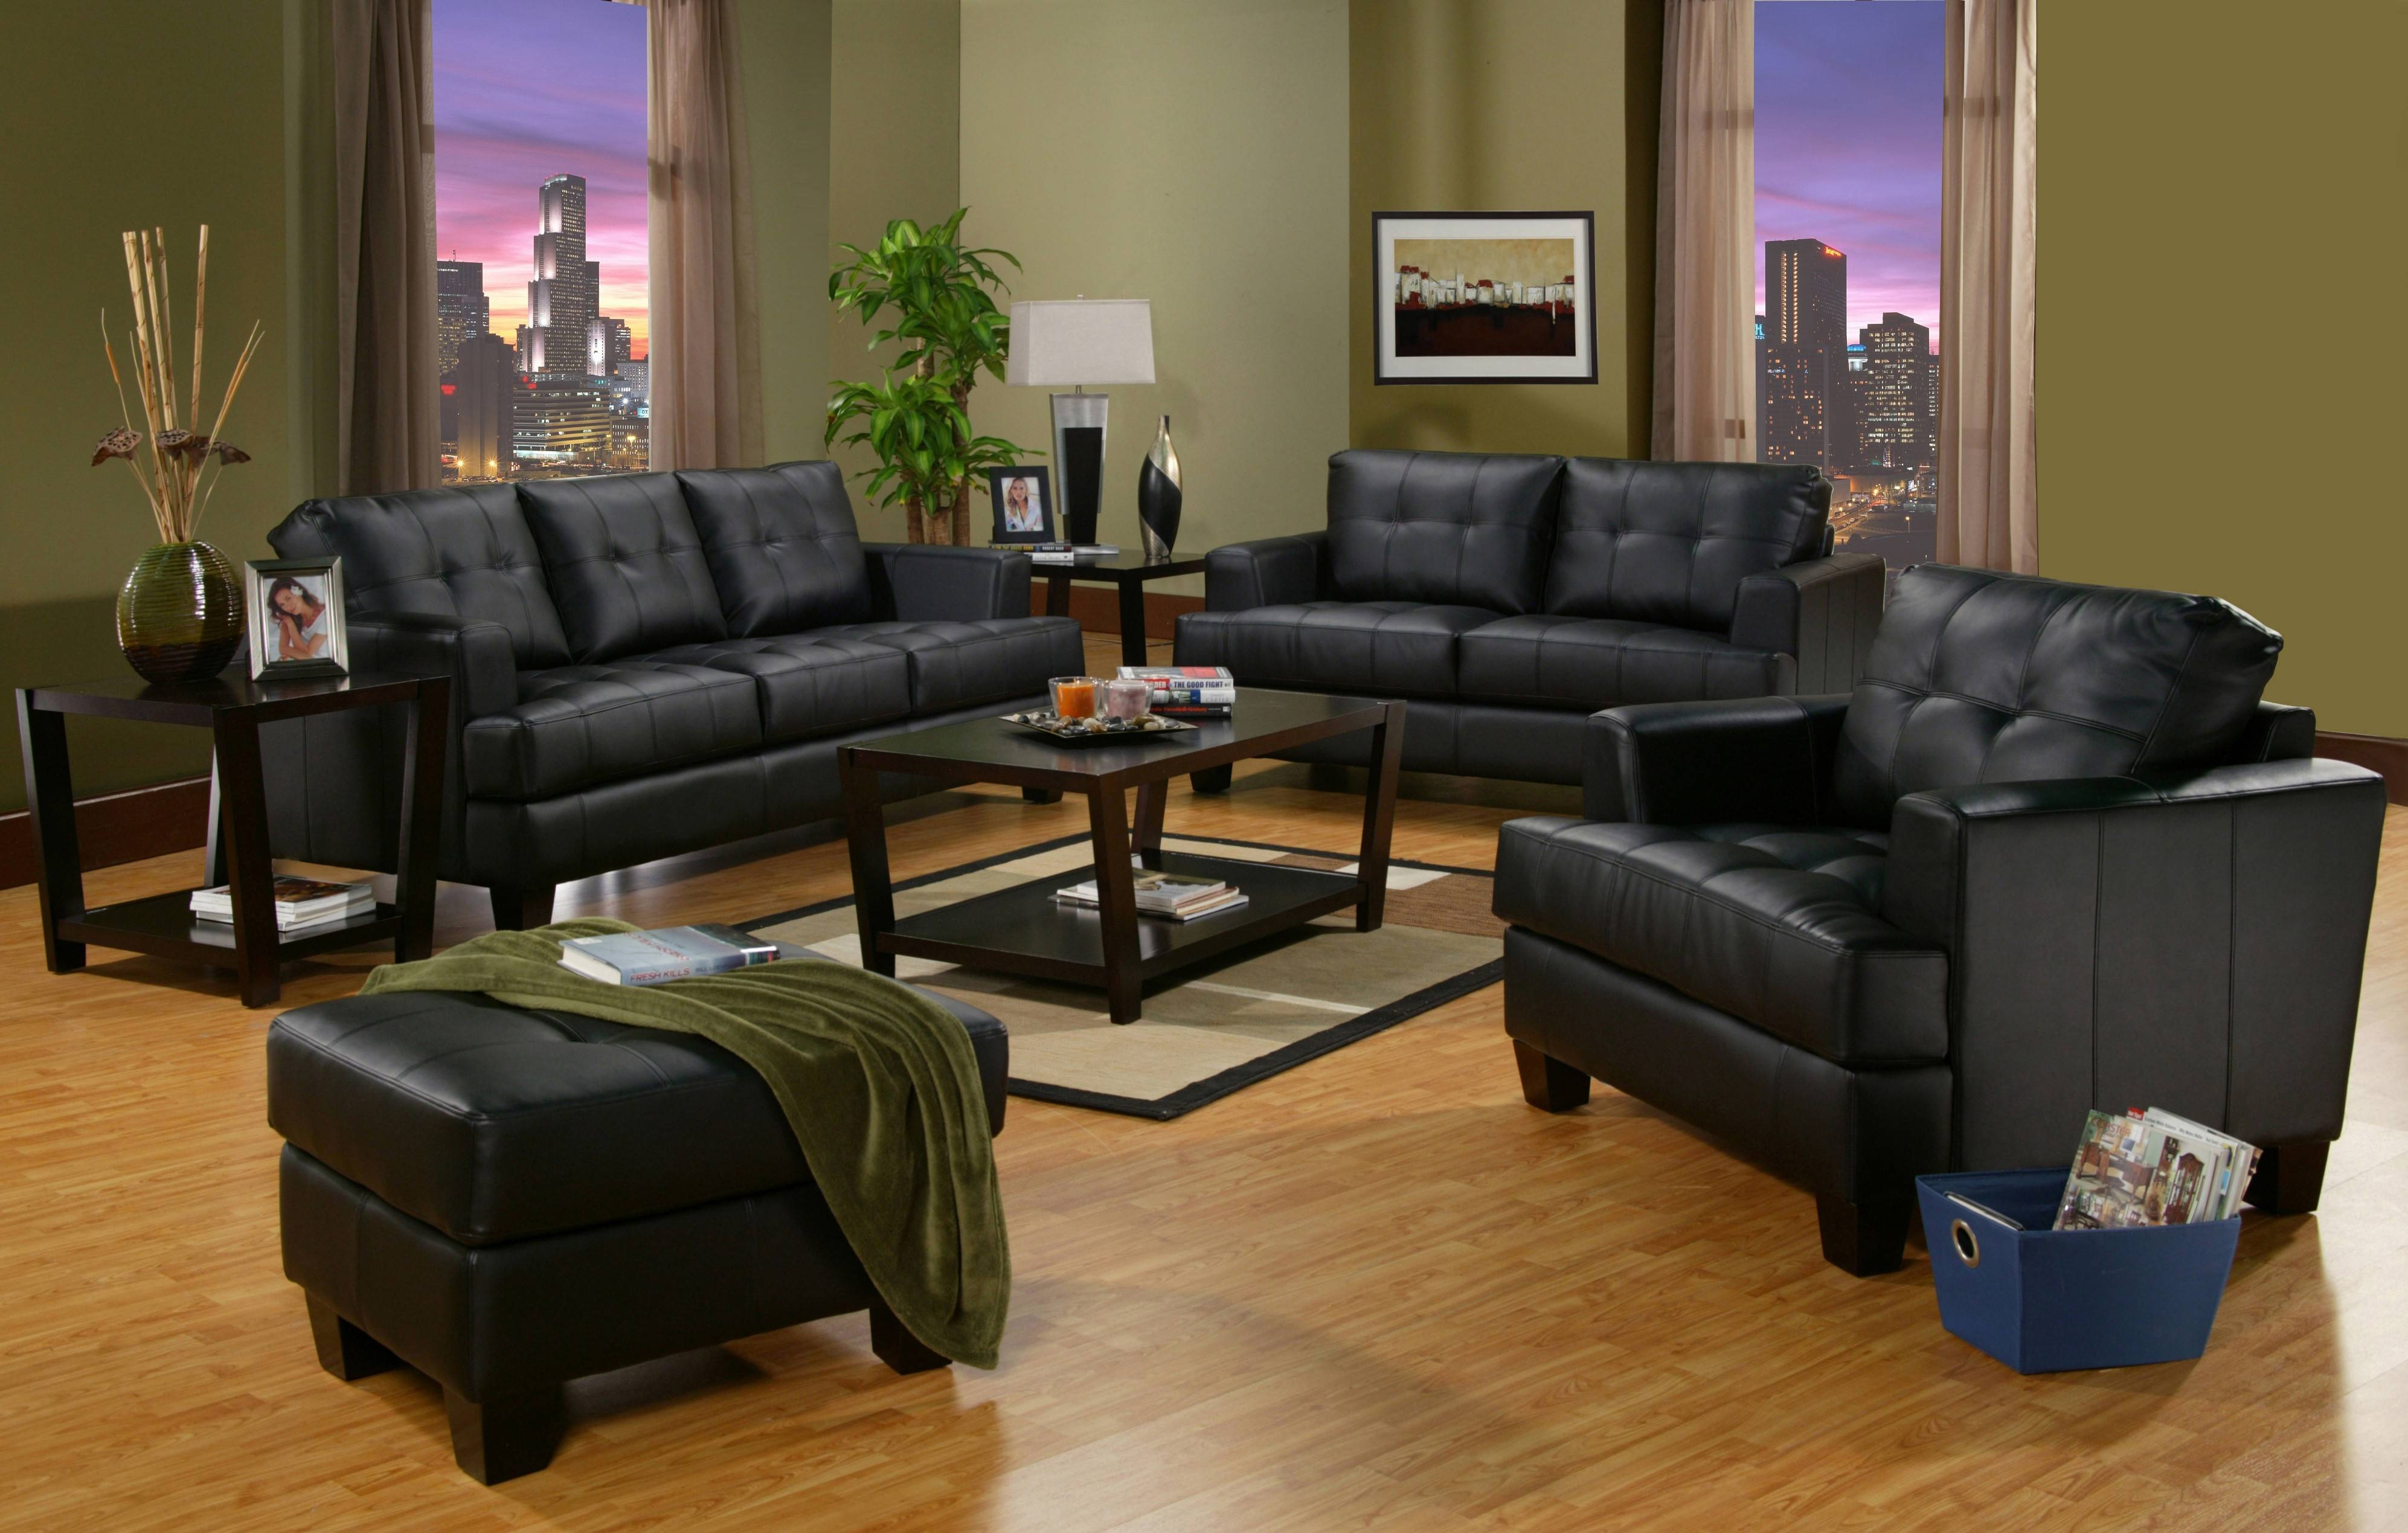 Samuel Contemporary Black Leather Sofa & Loveseat Package | La pertaining to Black Leather Sofas and Loveseat Sets (Image 14 of 15)